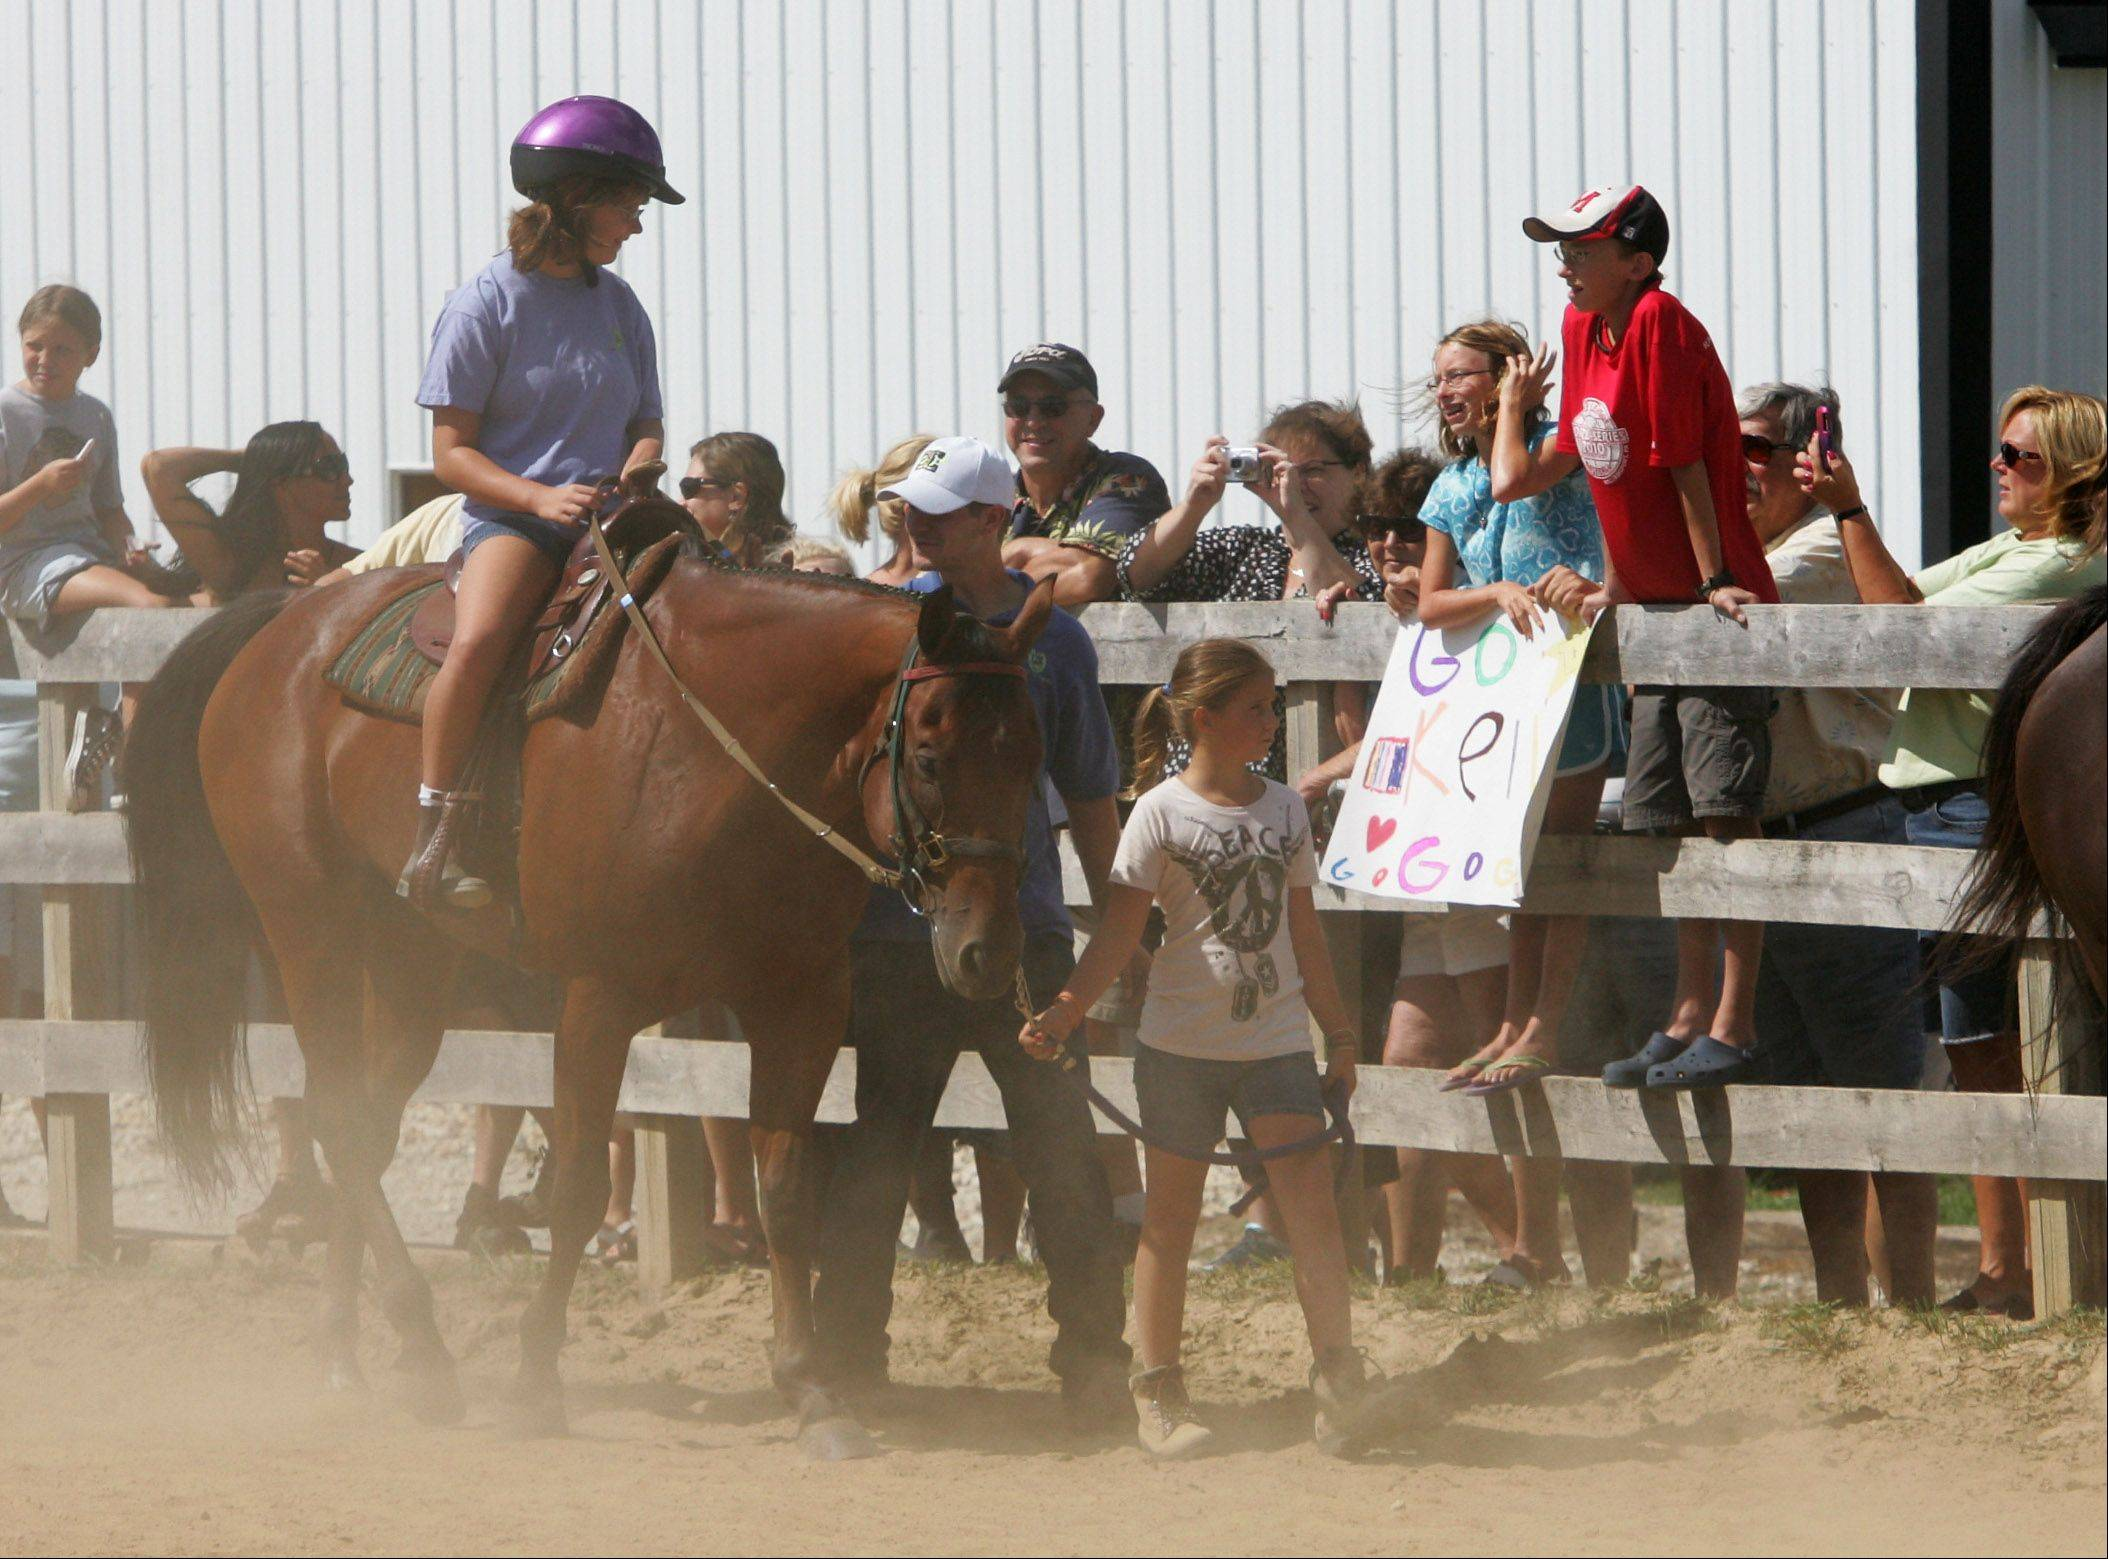 Kelly Corbin, 12, of Hawthorn Woods, rides Duncan as she hears cheers from family members during the Annual Family Summerfest & Participant Horse Show Event hosted by Partners For Progress Sunday at the Premier Equine Therapy Center in Wauconda.